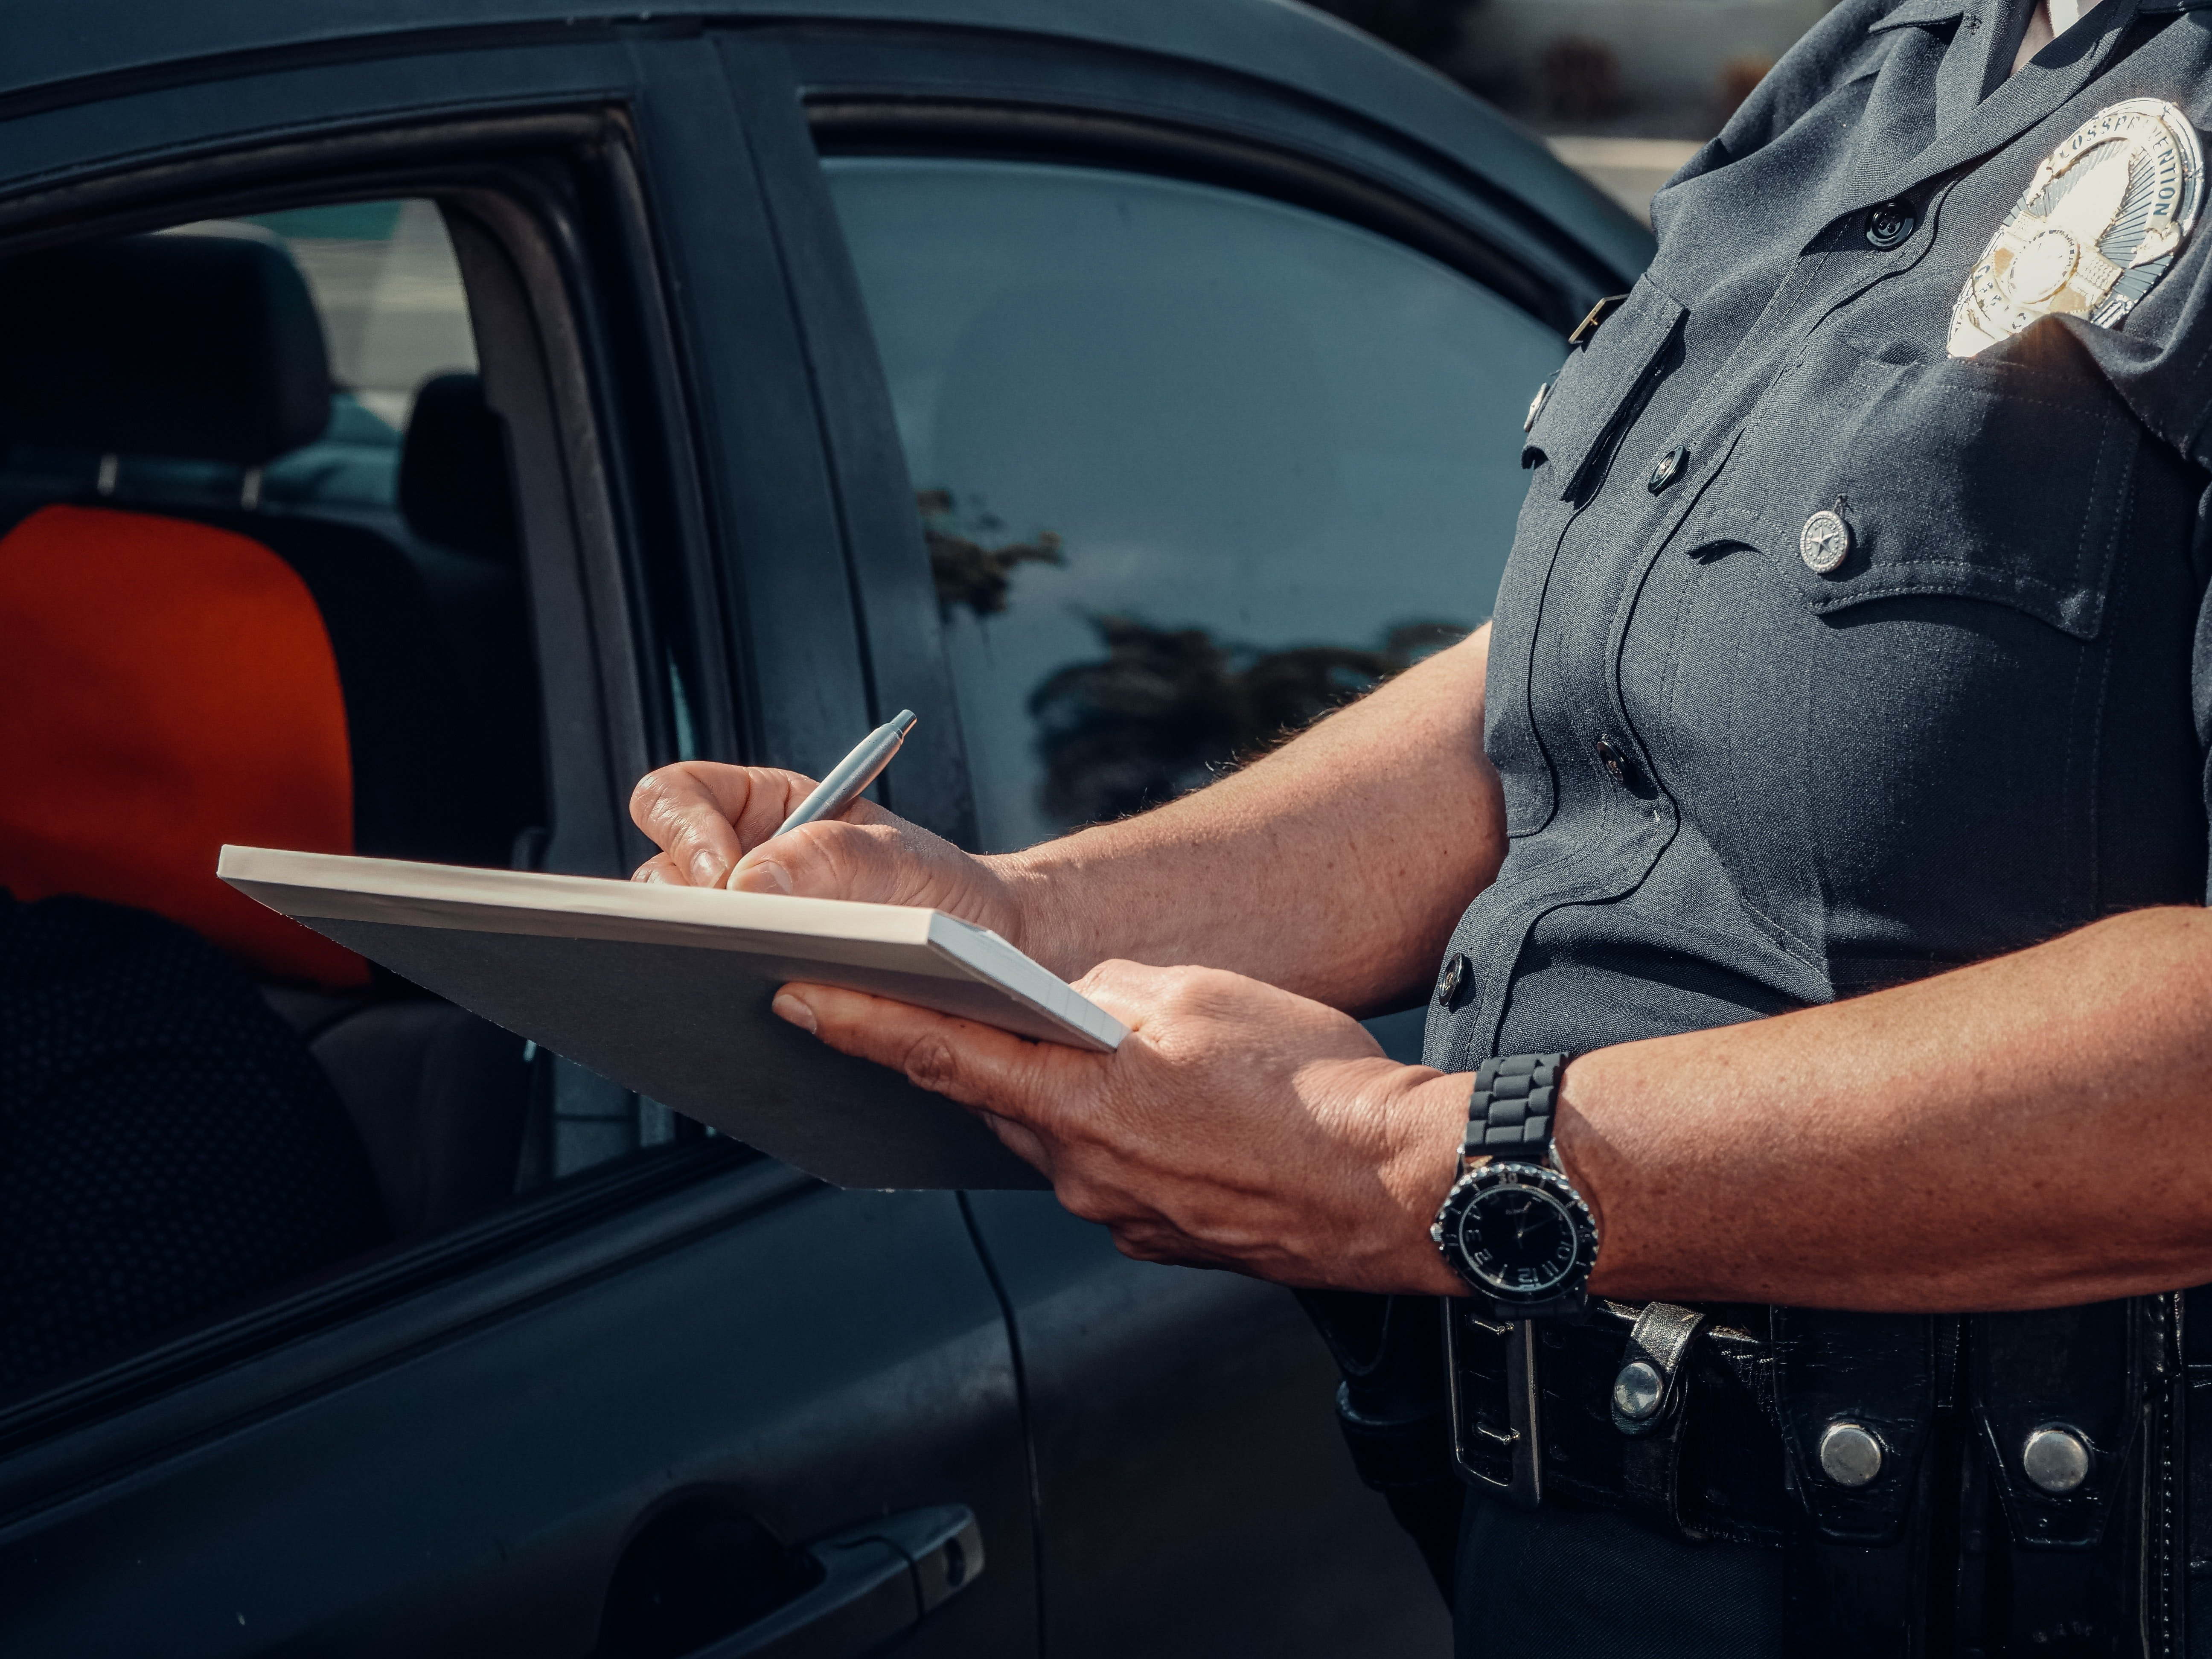 A police officer brings a driver to book and writes them a fine   Photo: Pexels/Kindel Media